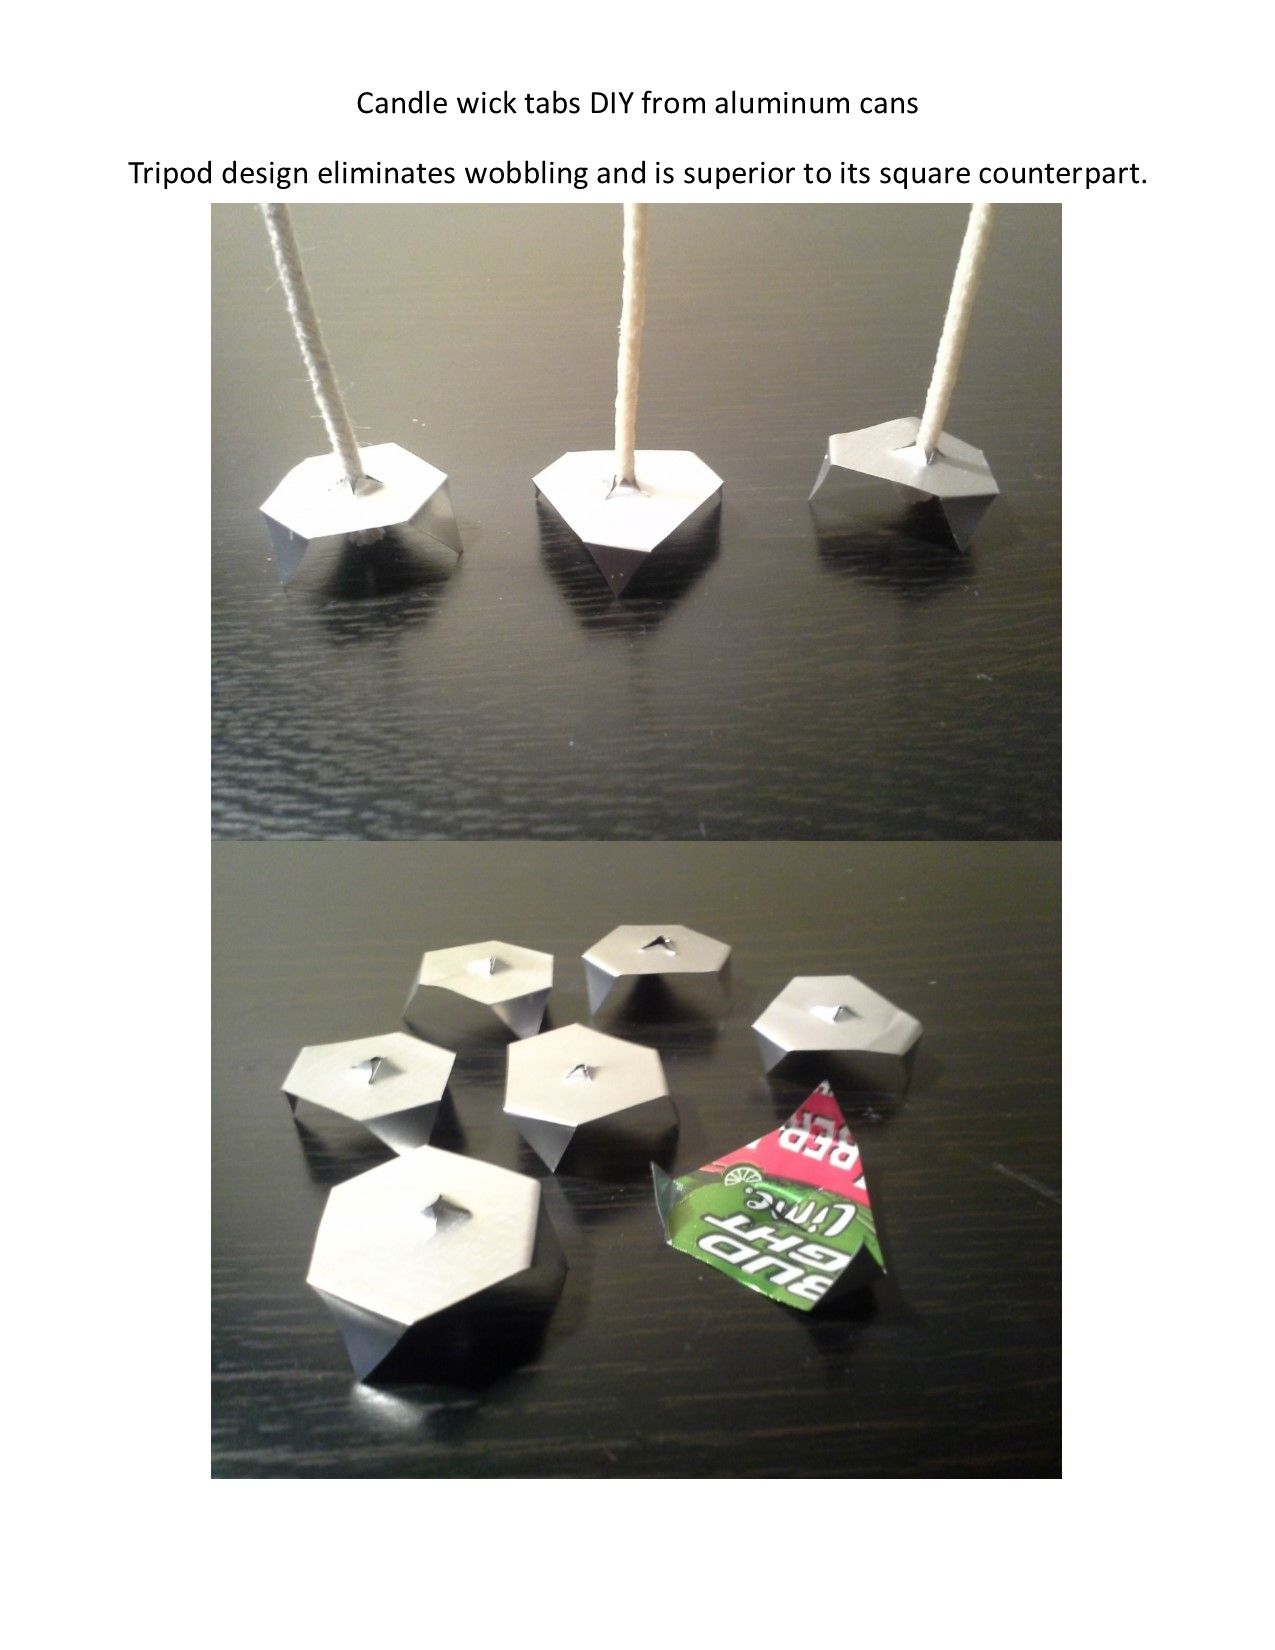 Candle wick tabs DIY Wick tabs, Candlewicking, Candles